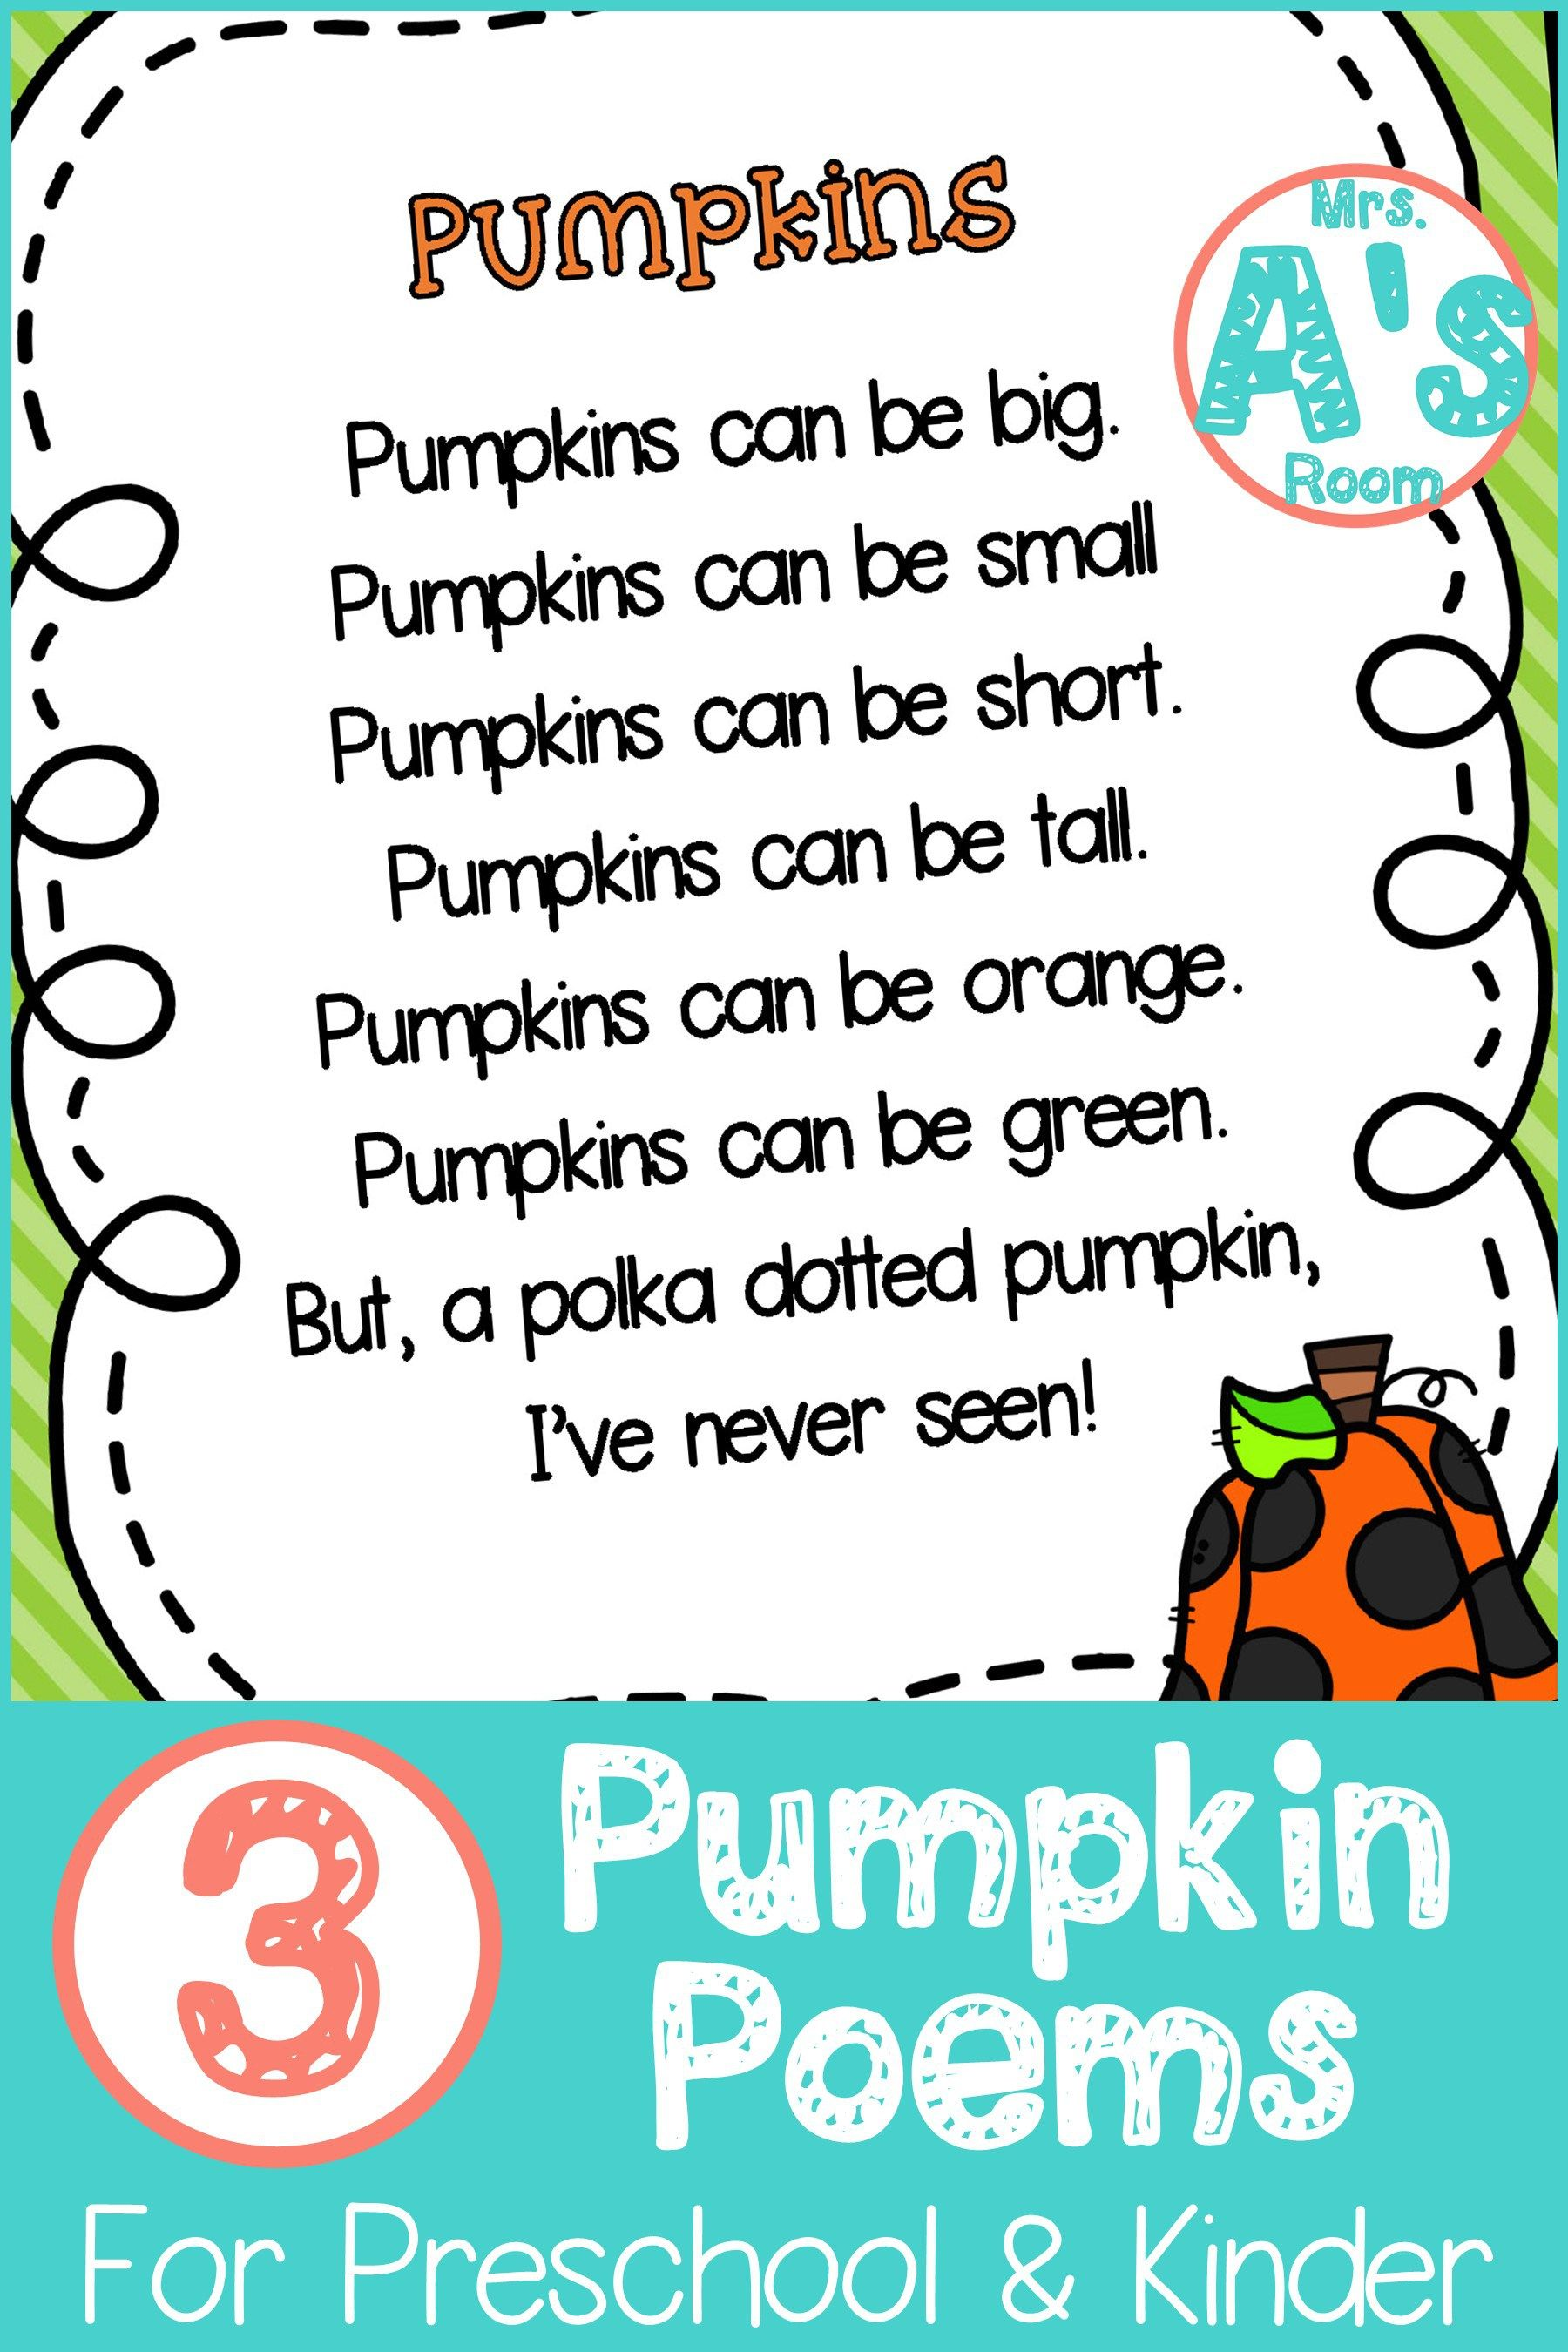 Three Pumpkins Poems For Preschool